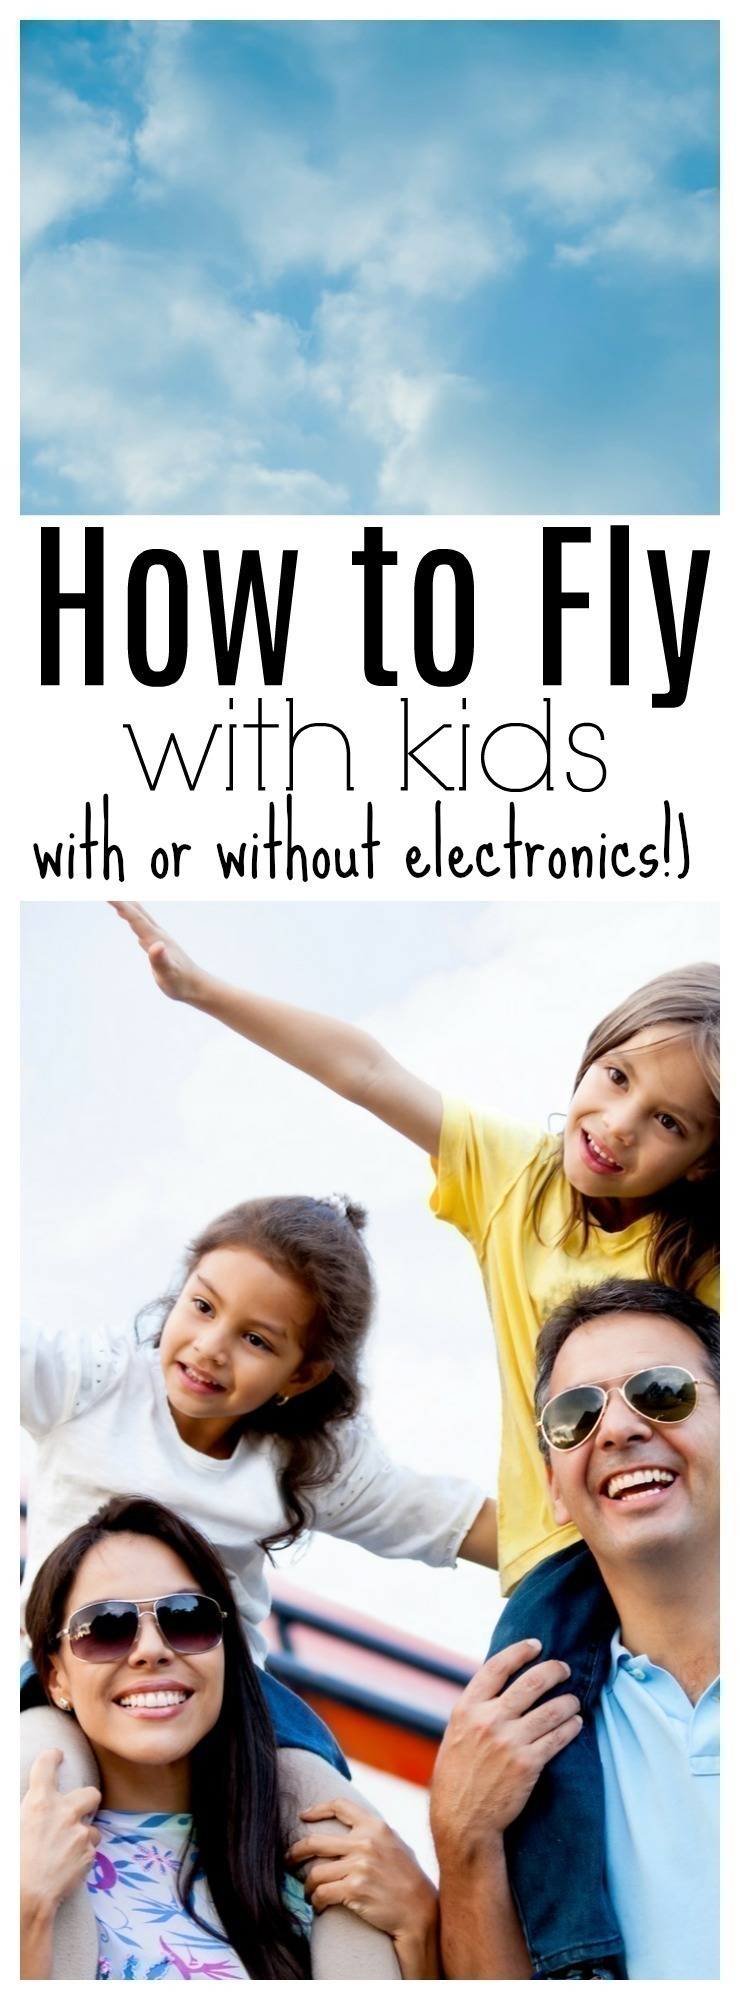 Flying with kids can be stressful - traveling by car OR plane is not an easy feat. Thankfully there are many things you can do to keep them engaged - with or without electronic devices.